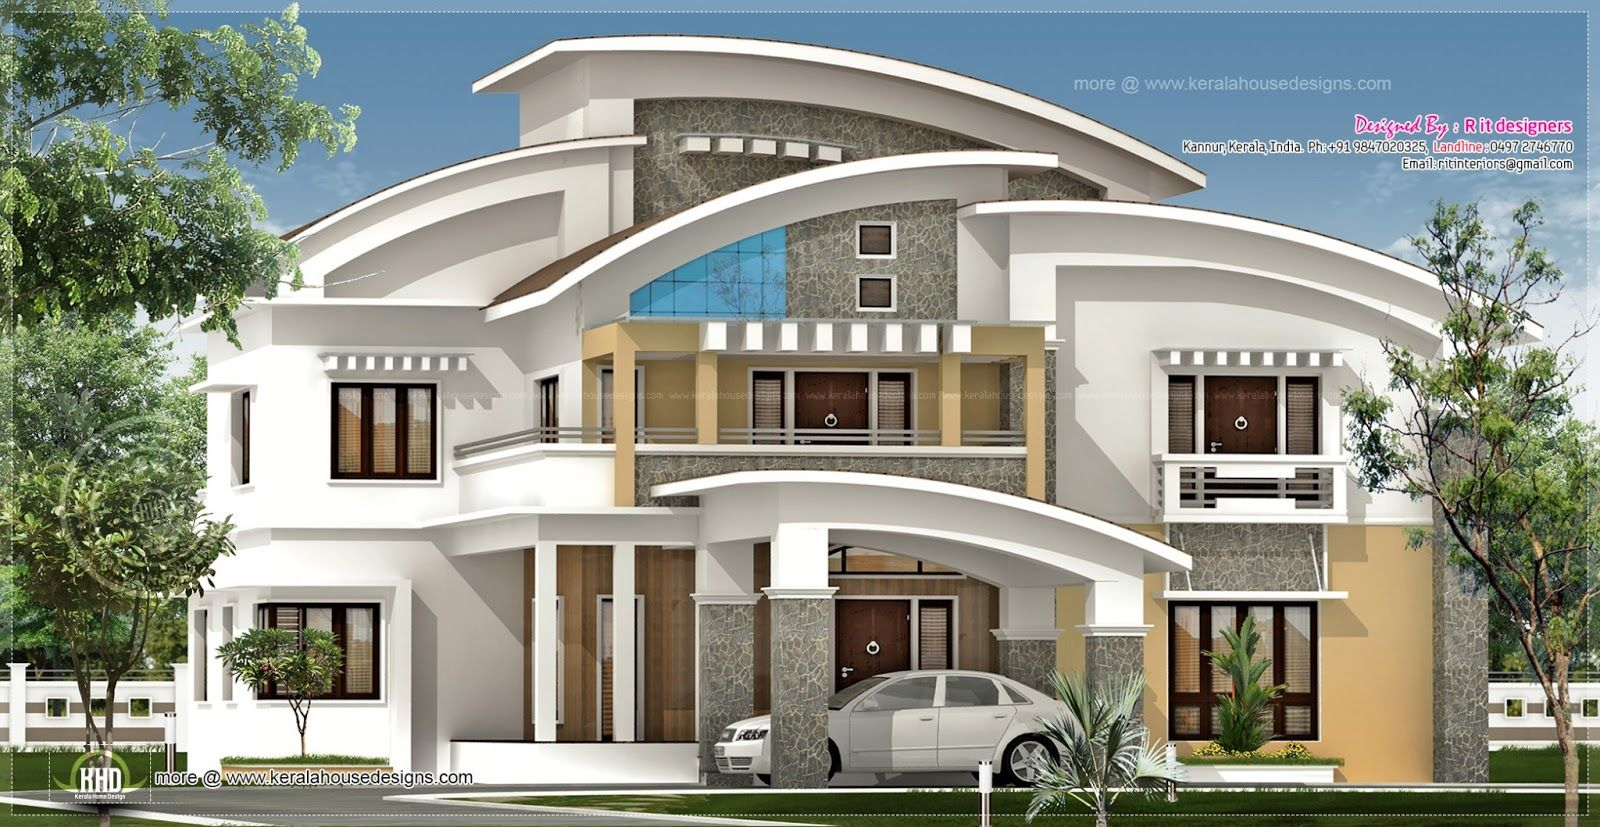 Awesome luxury homes plans 8 french country luxury home for Executive house plans